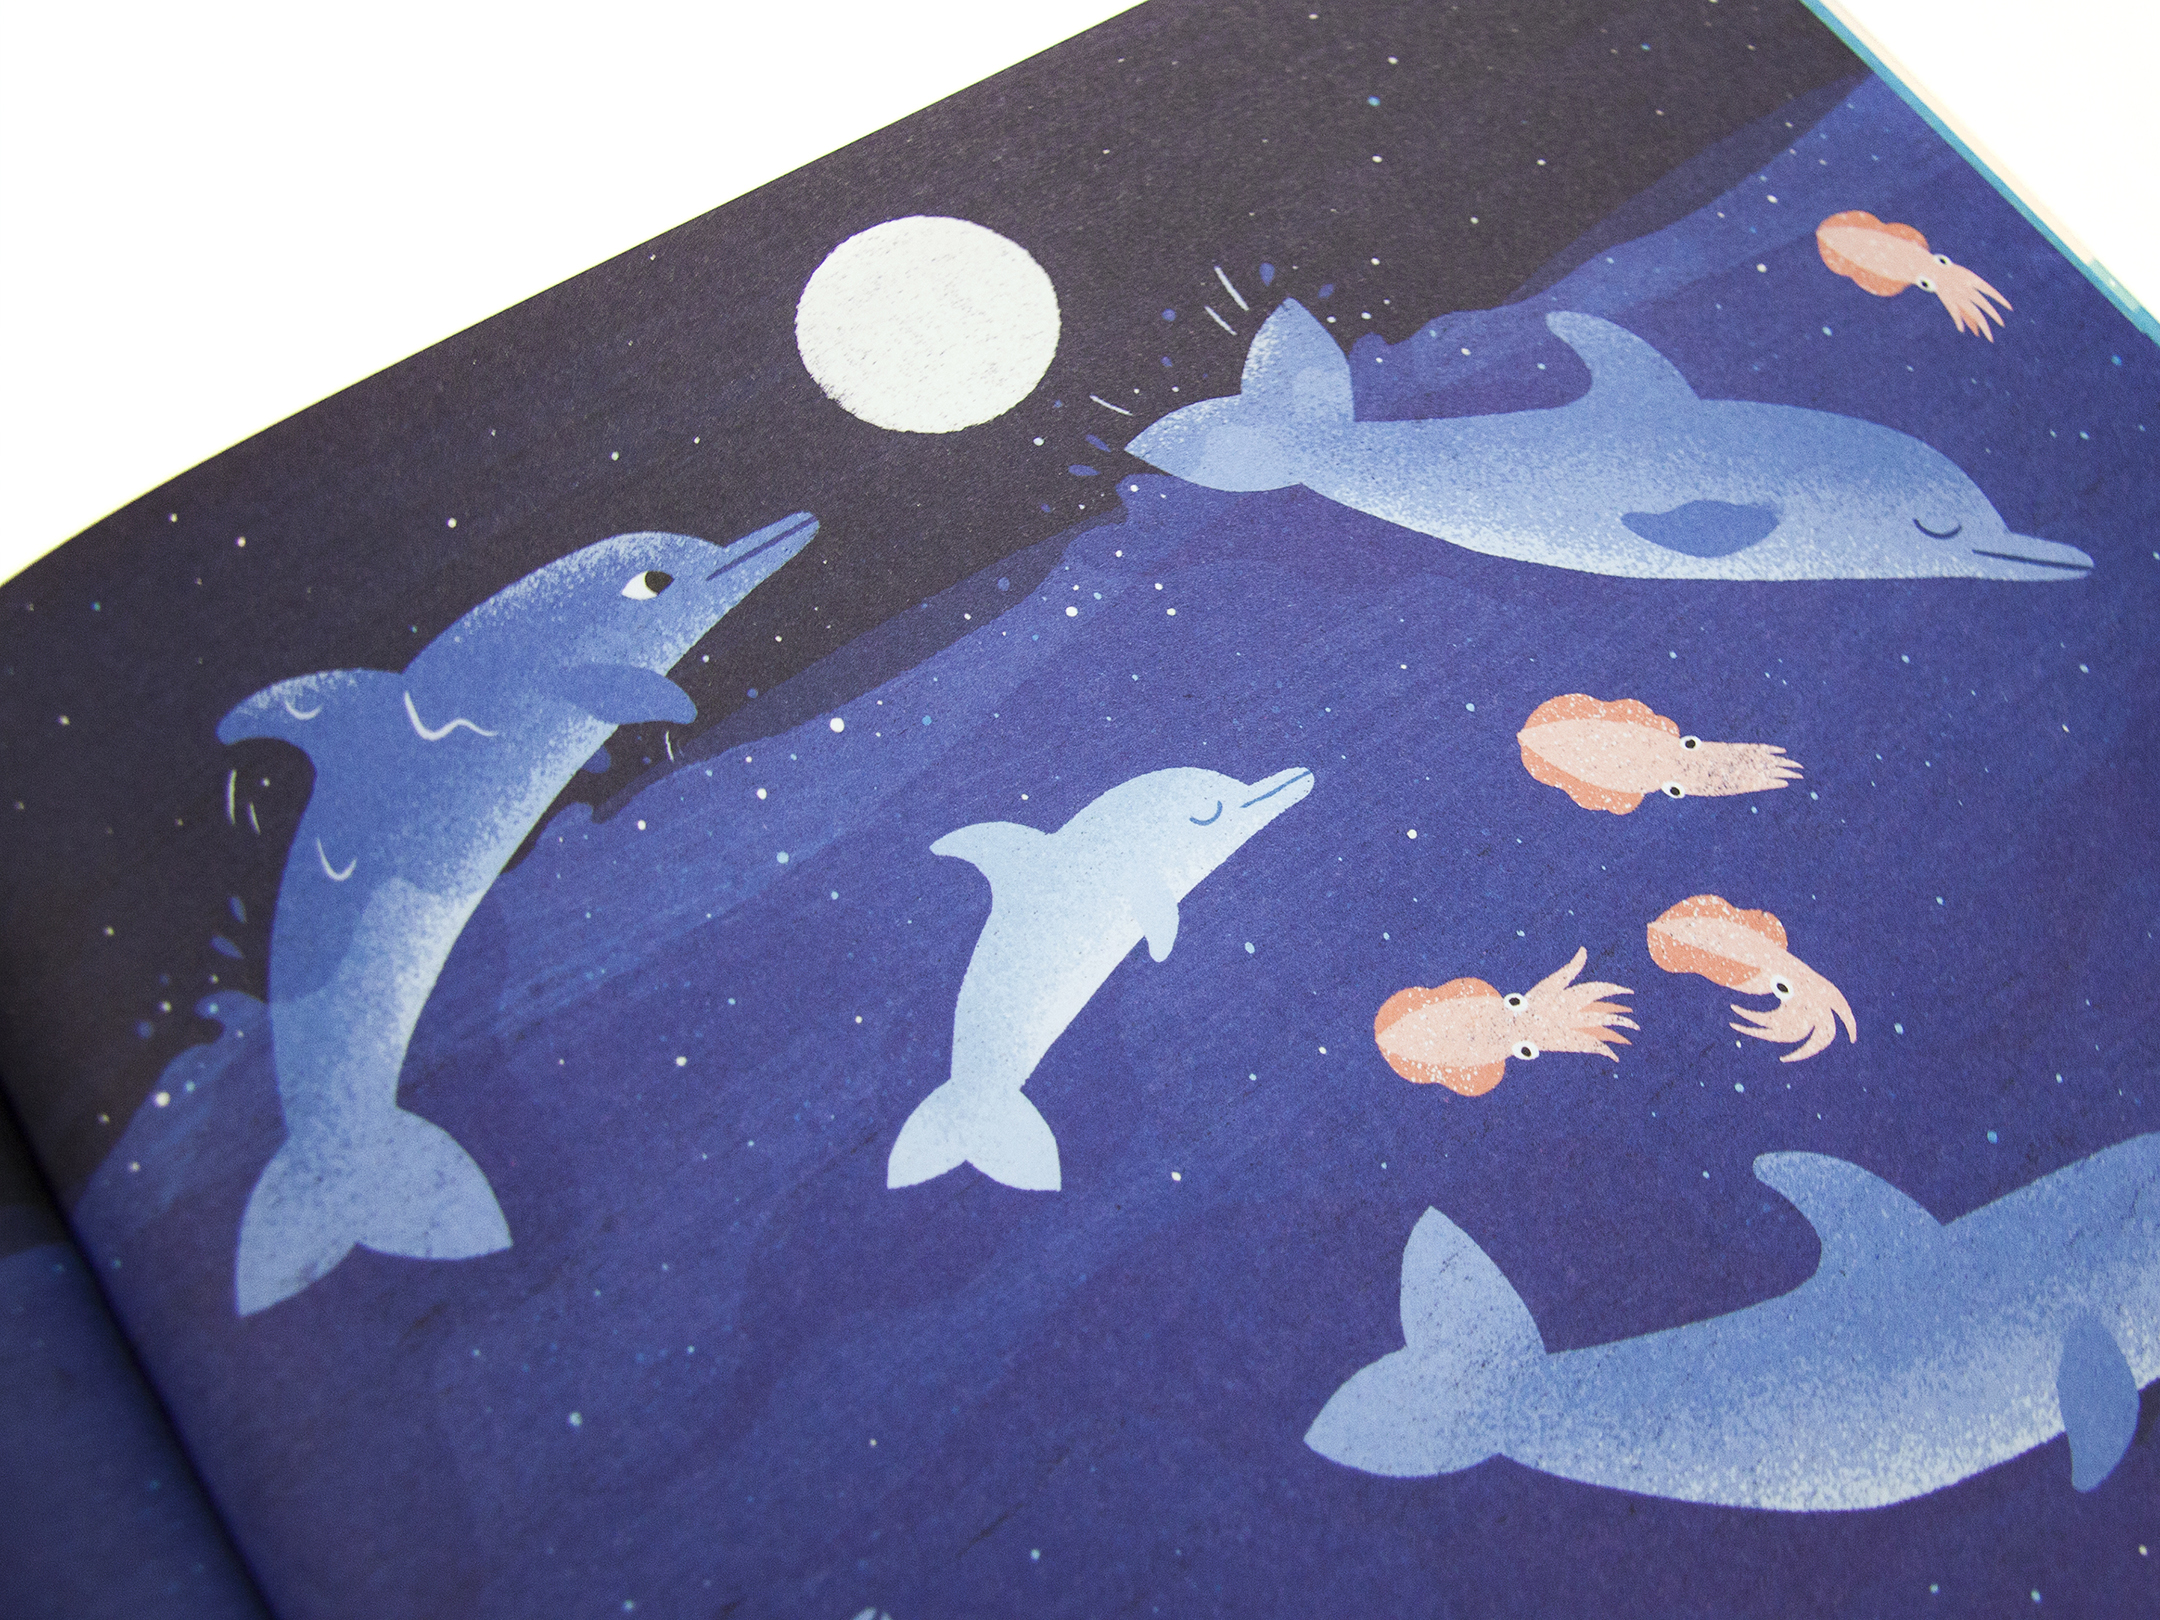 nobrow press one day on our blue planet in the ocean